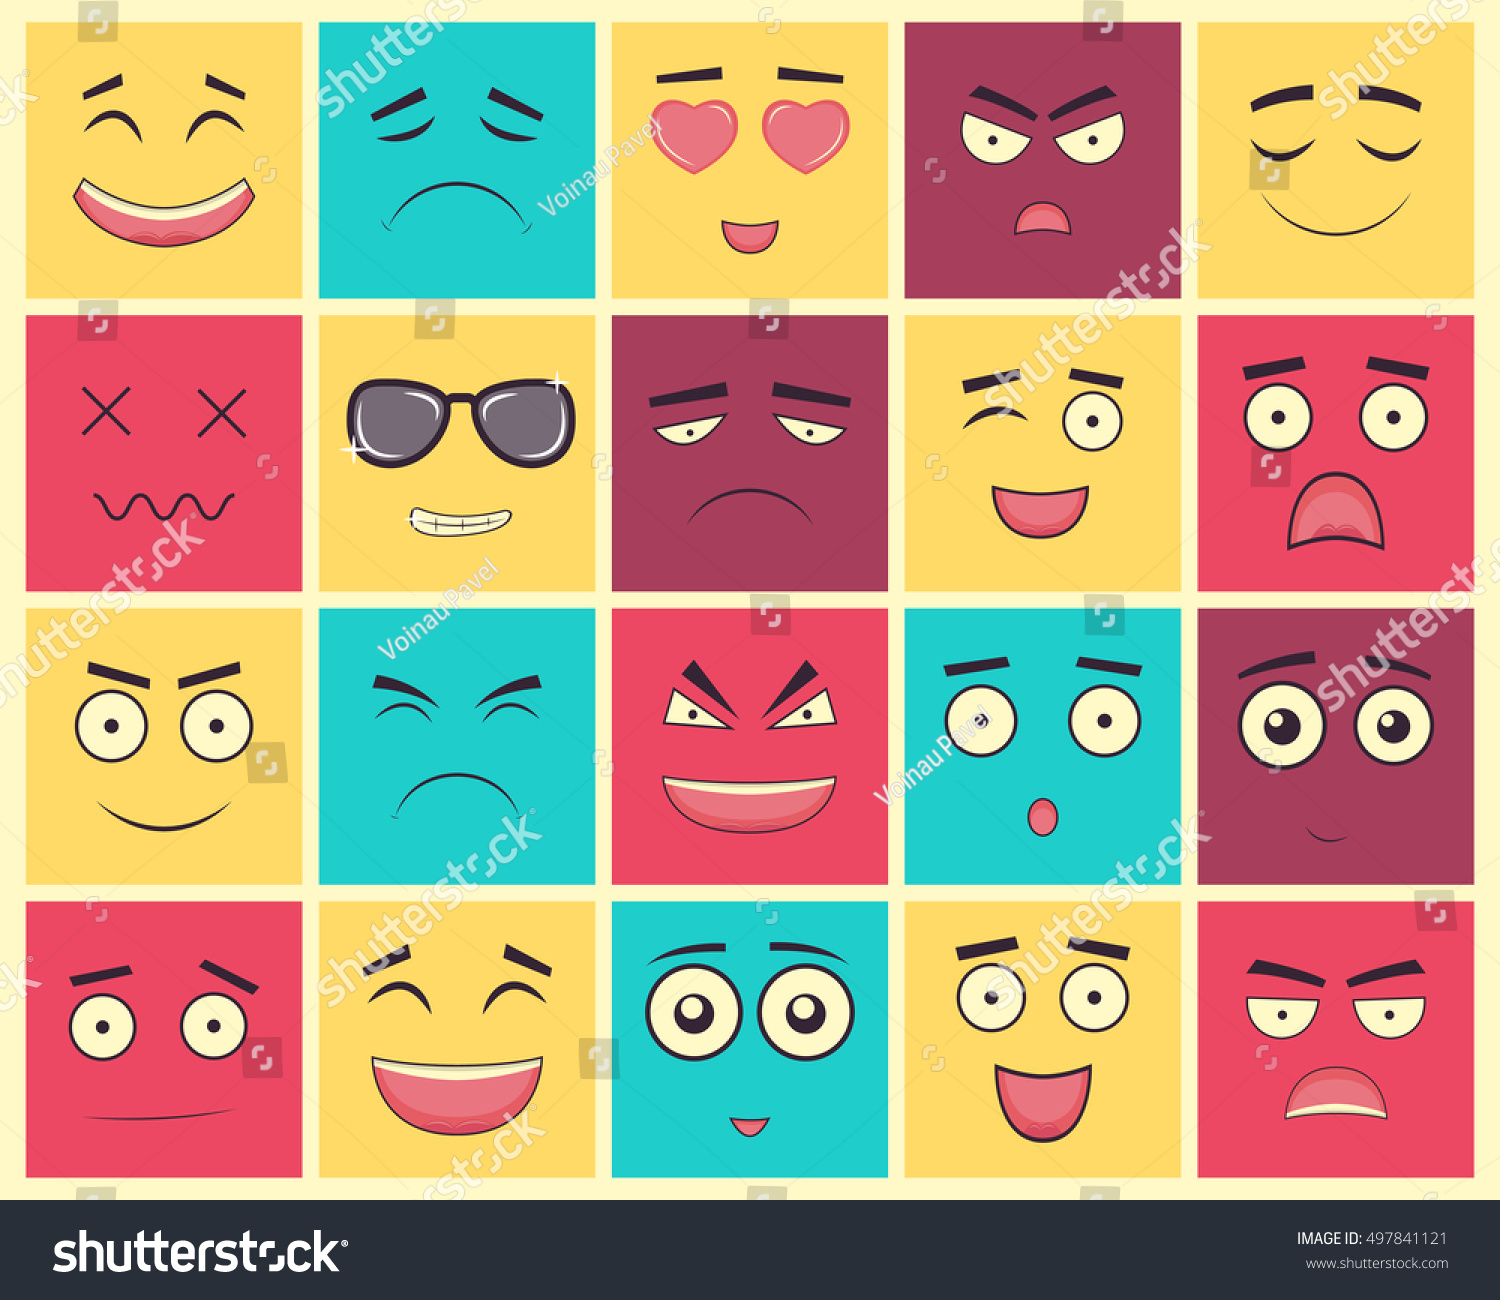 Set square emoticons emoticon web site stock vector 497841121 set of square emoticons emoticon for web site chat sms vector illustration biocorpaavc Image collections